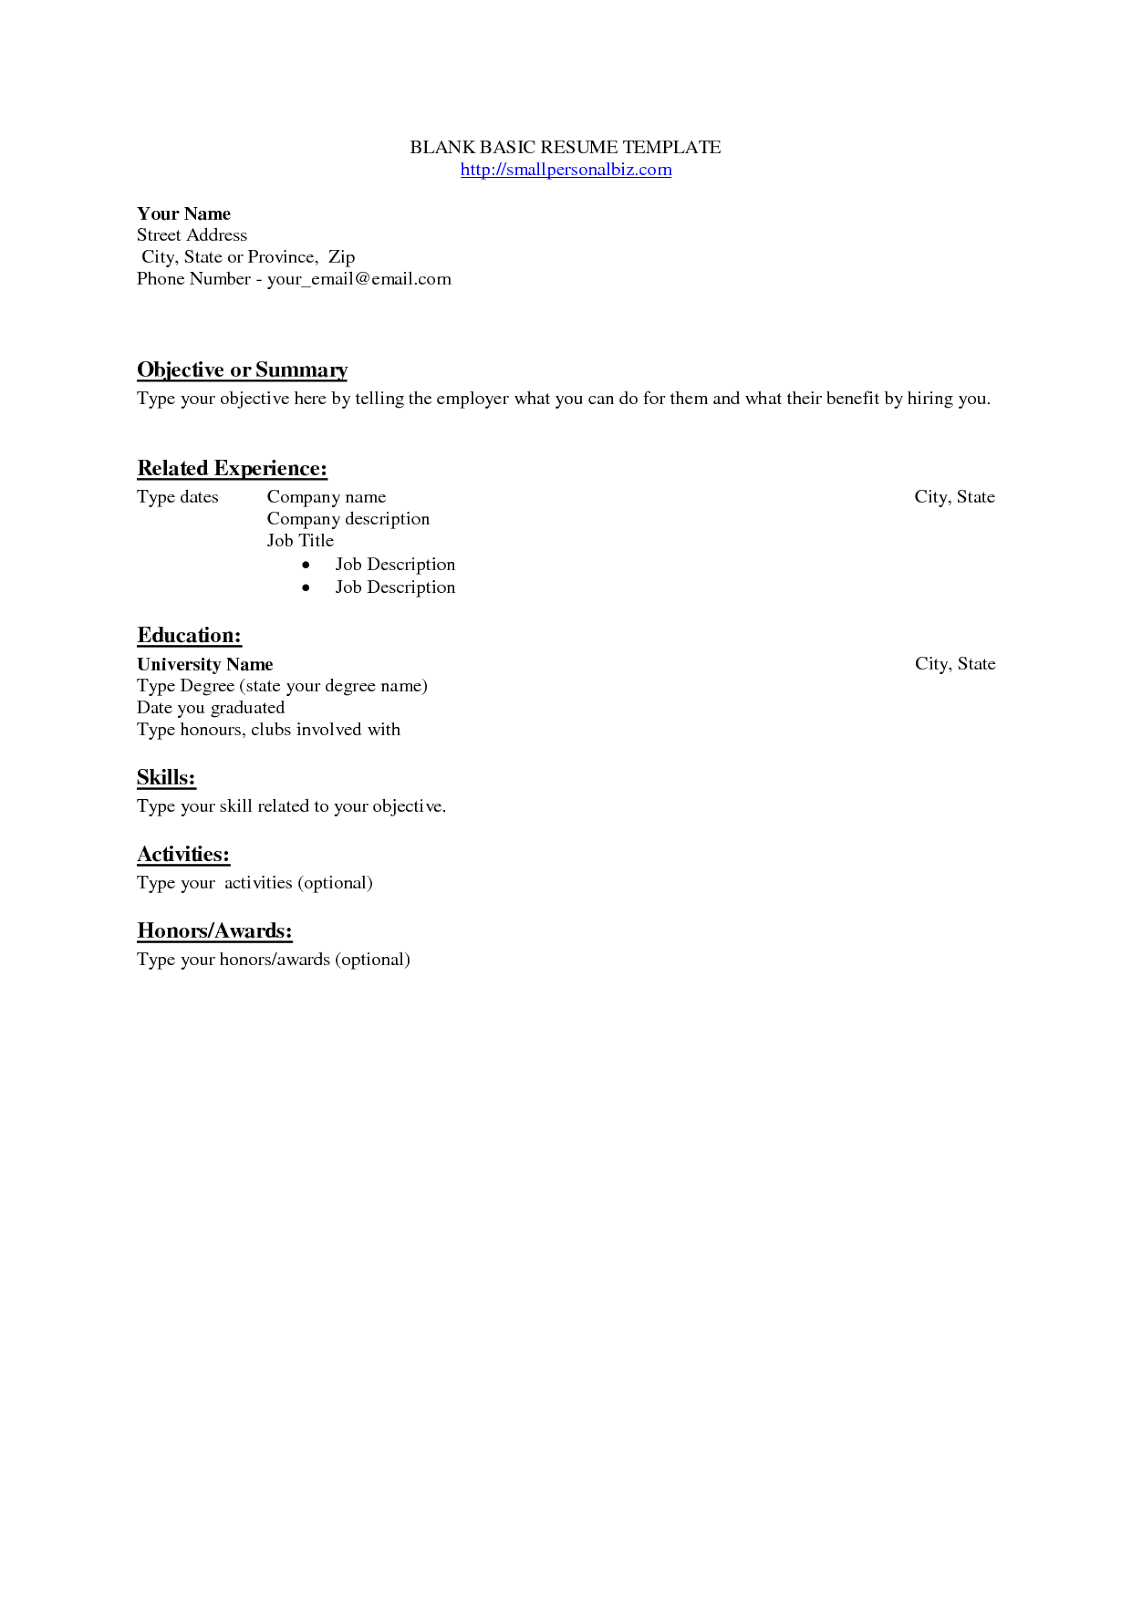 quick resume builder free printable resume outlines blank job resume form printable basic with orvis center com template - Resume Builder Company